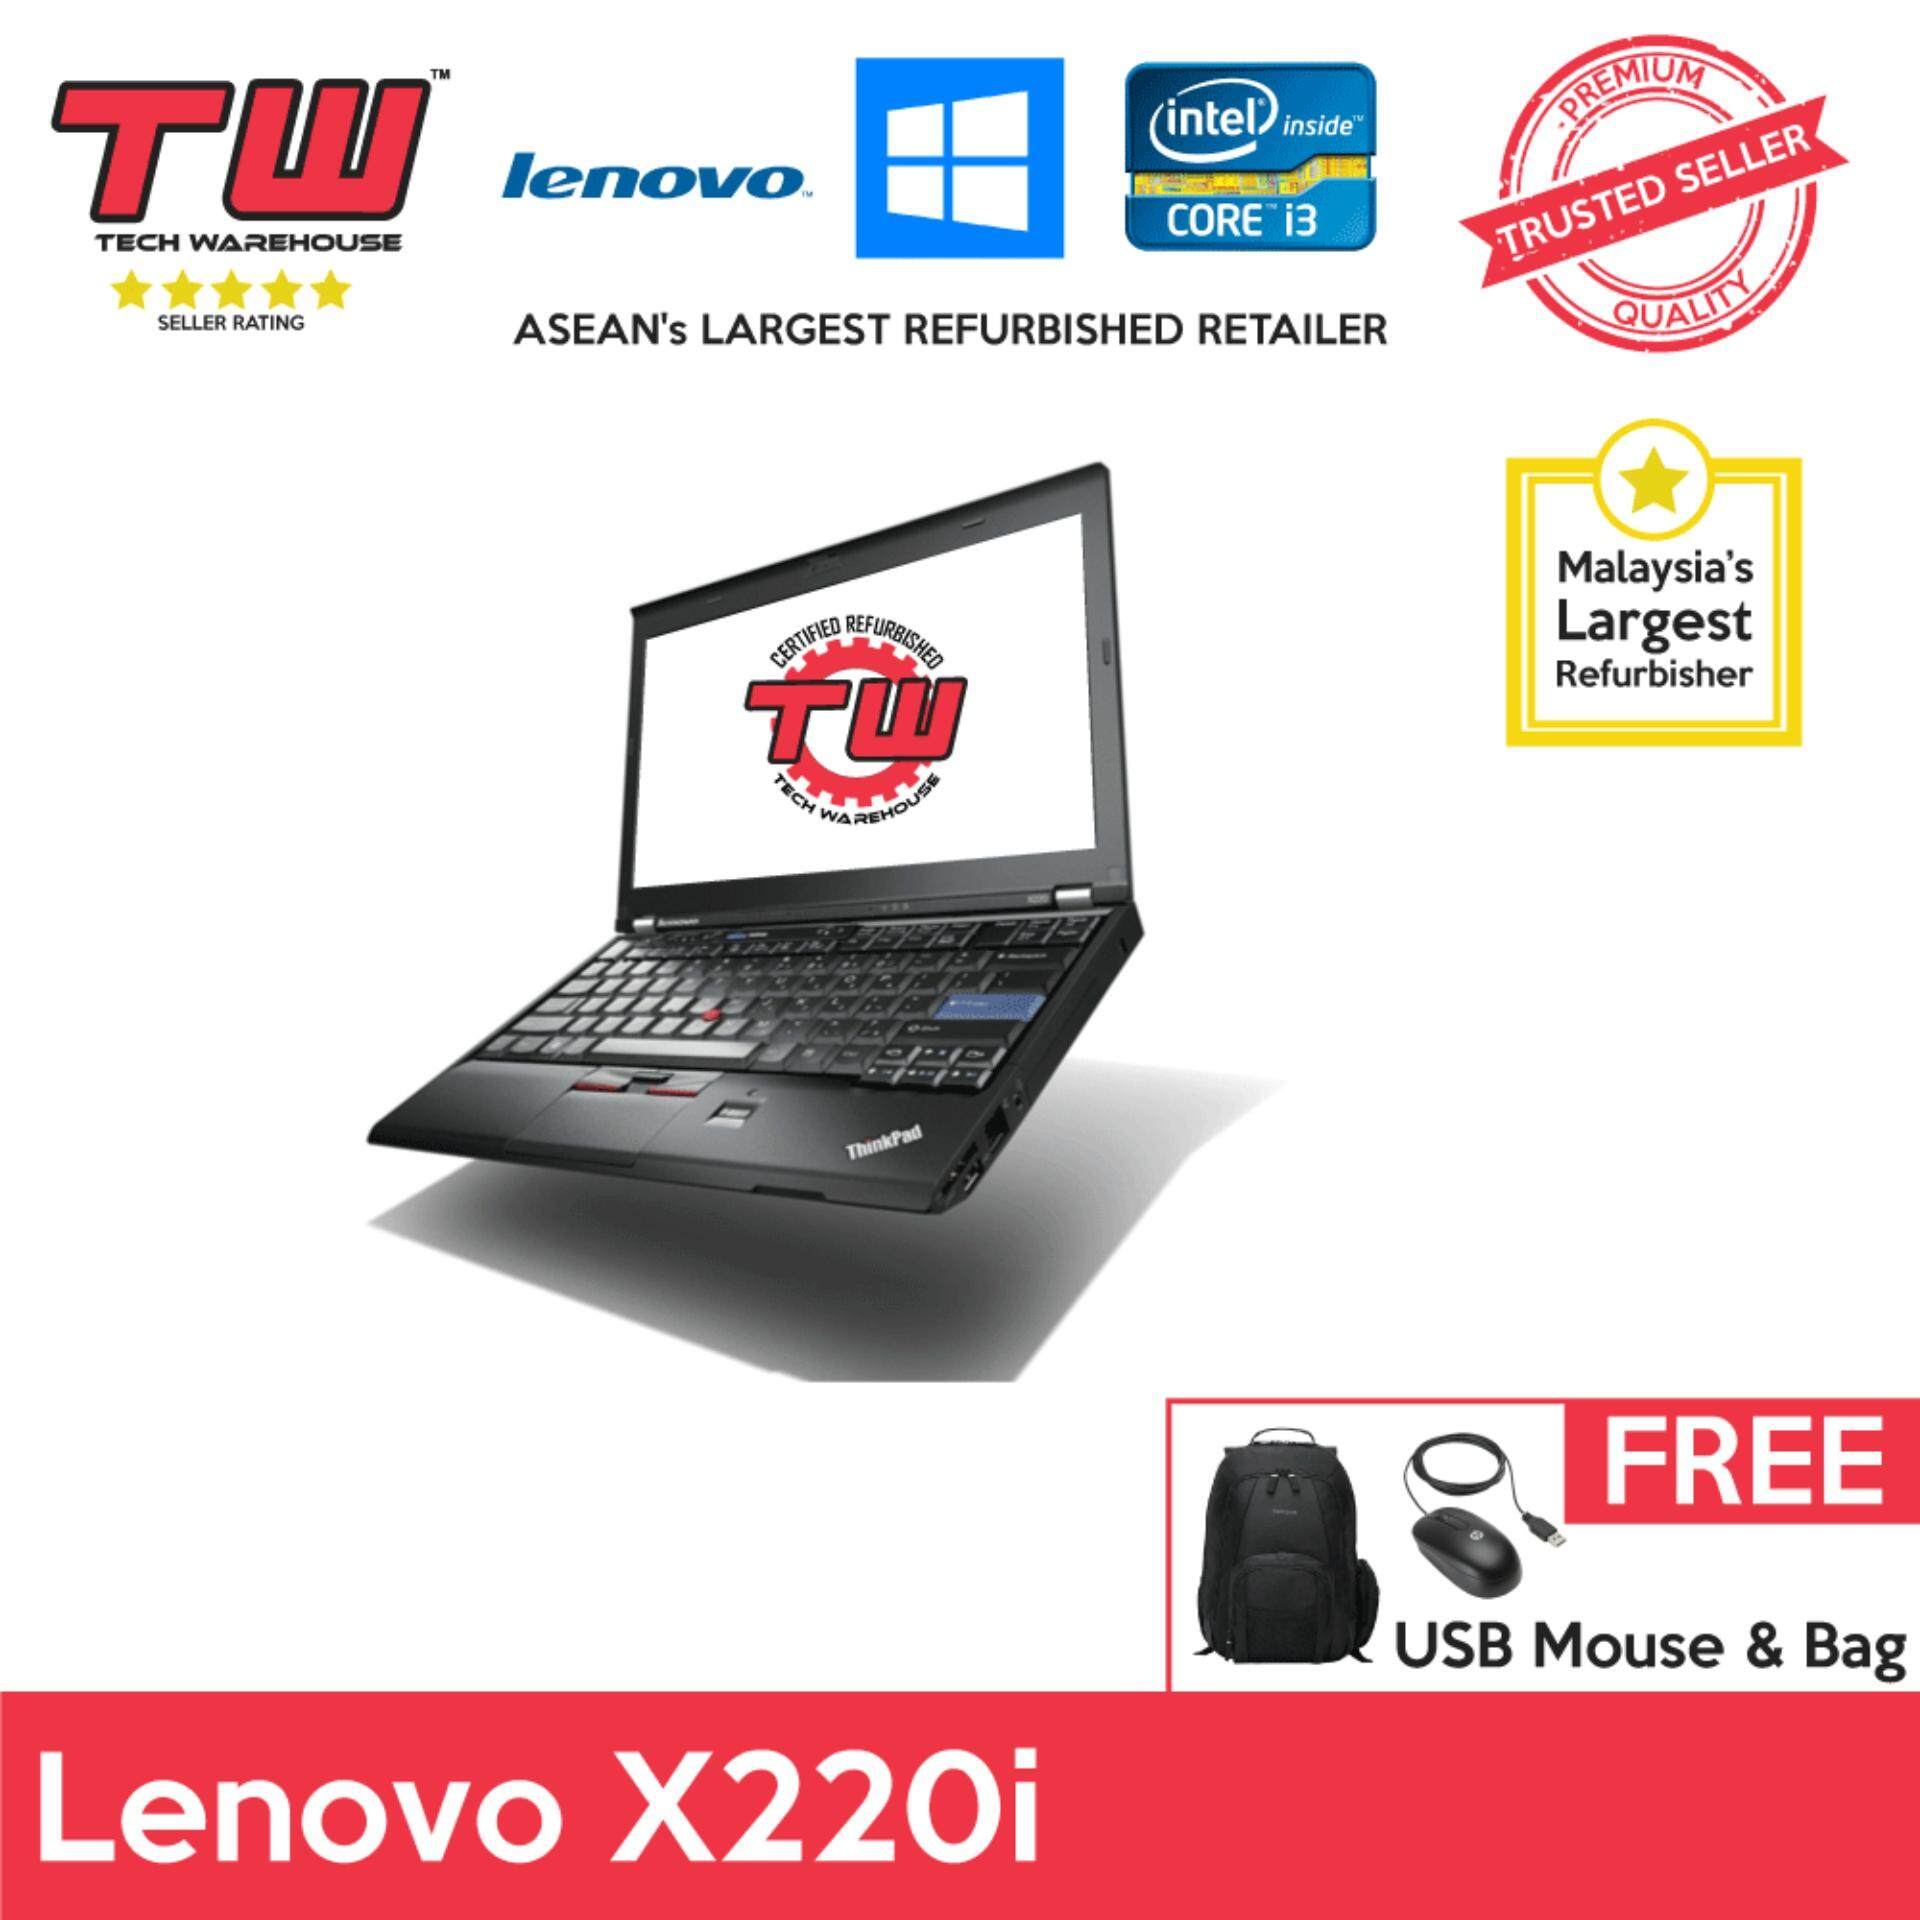 Lenovo ThinkPad X220i Core i3 2.3GHz / 4GB RAM / 250GB HDD / Windows 7 Laptop / 3 Months Warranty (Factory Refurbished) Malaysia